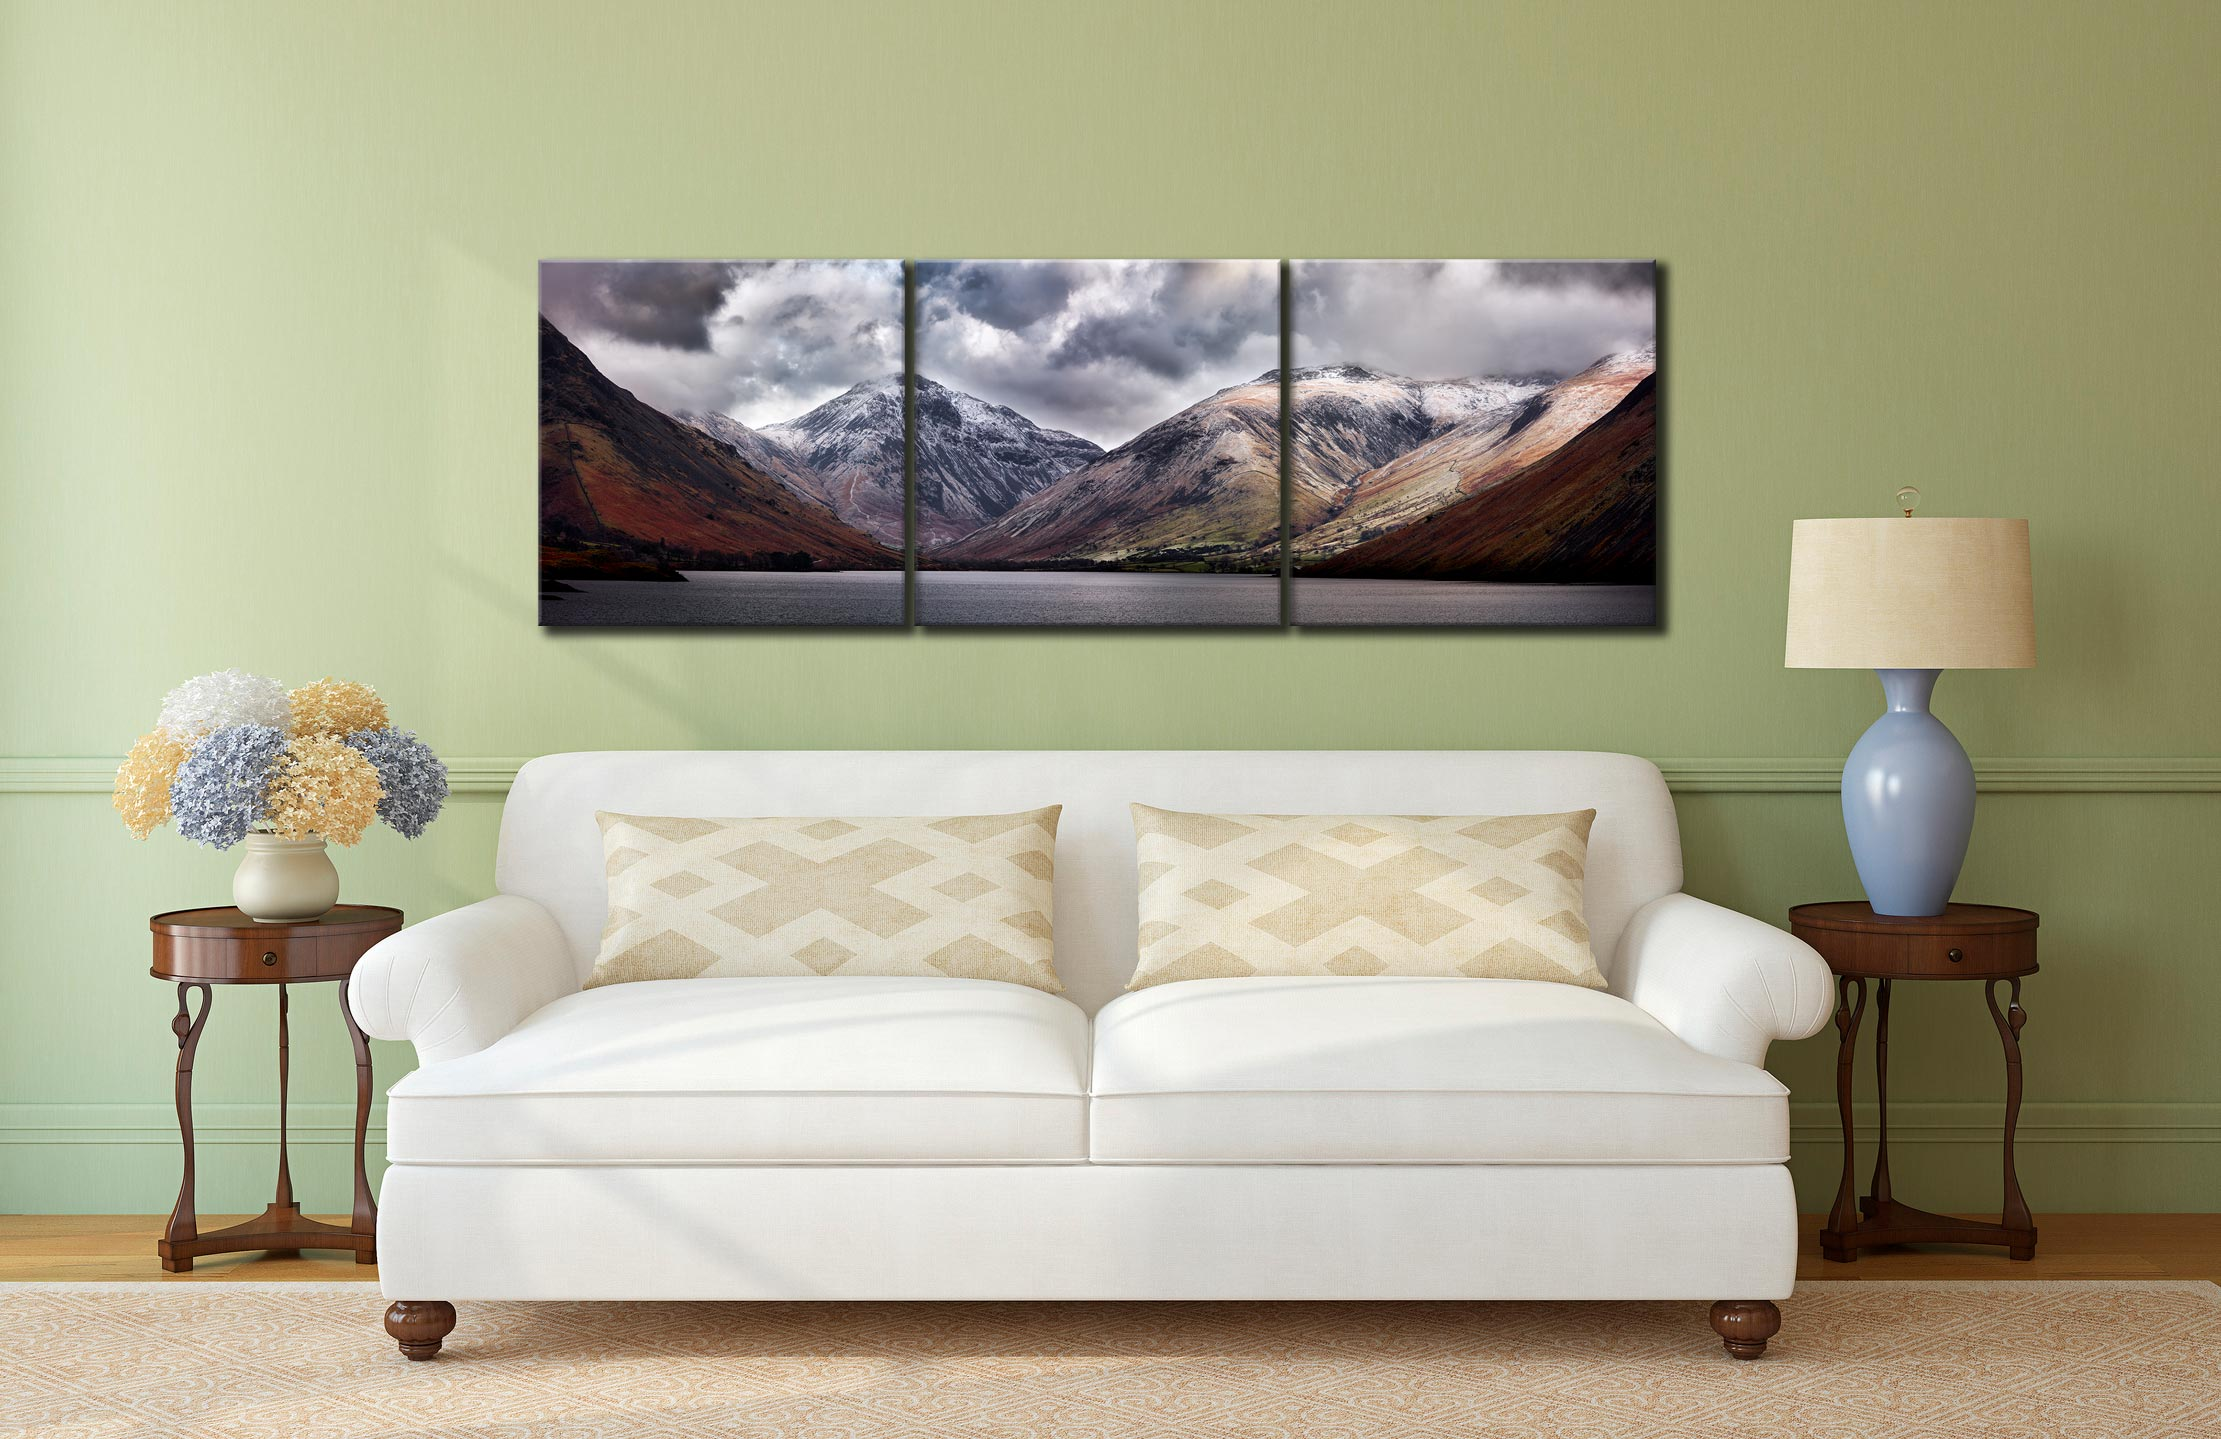 Great Gable and Lingmell - 3 Panel Canvas on Wall